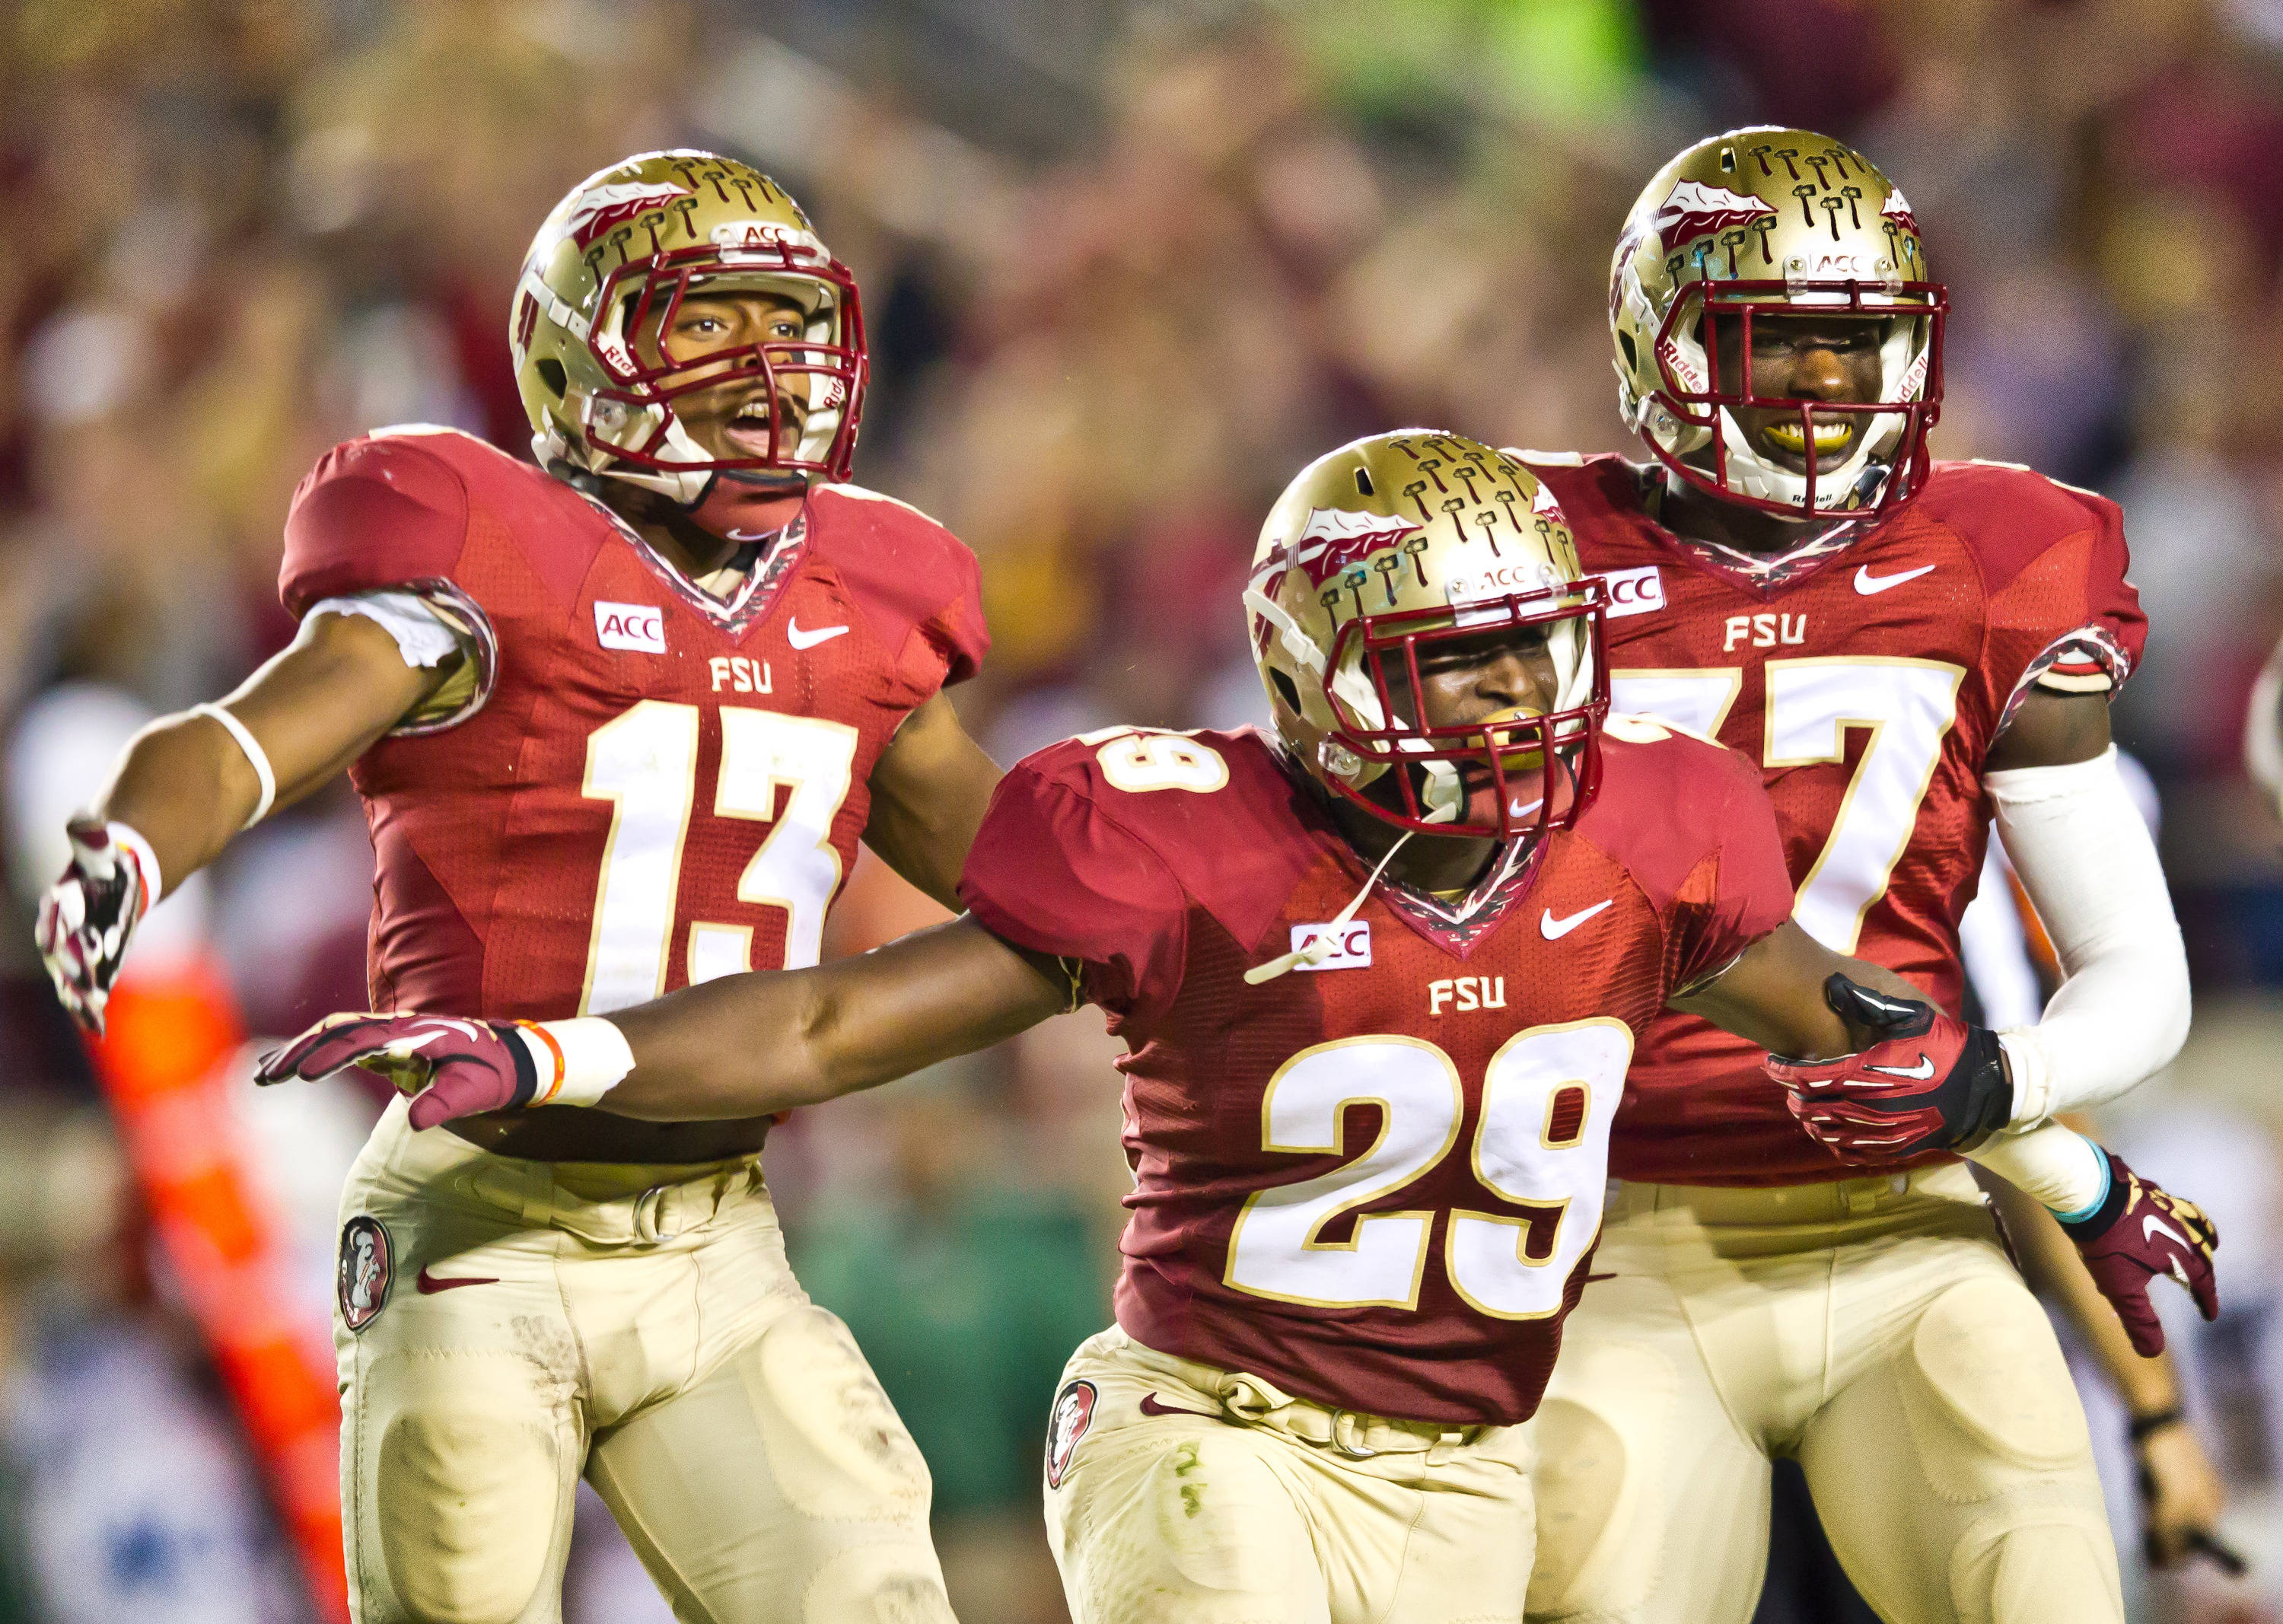 Nate Andrews (29) interception.  Jalen Ramsey (13) & Keelin Smith (37) celebrate with Andrews as they leave the field.